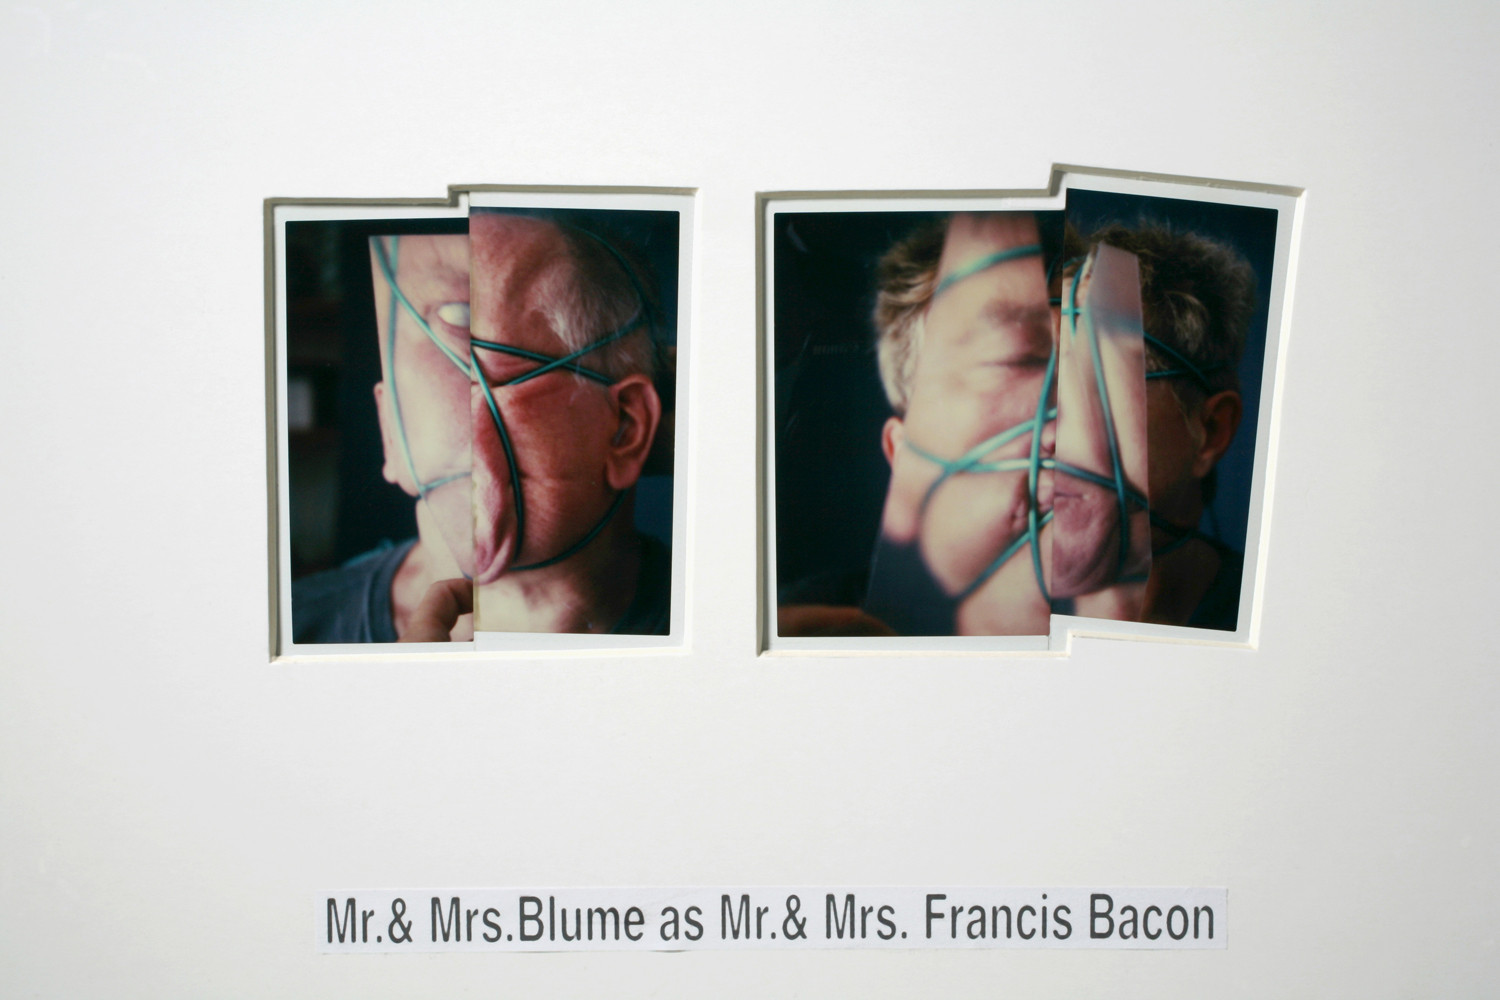 Anna & Bernhard Blume, 'Mr. & Mrs. Blume as Mr. & Mrs. Francis Bacon', 1995